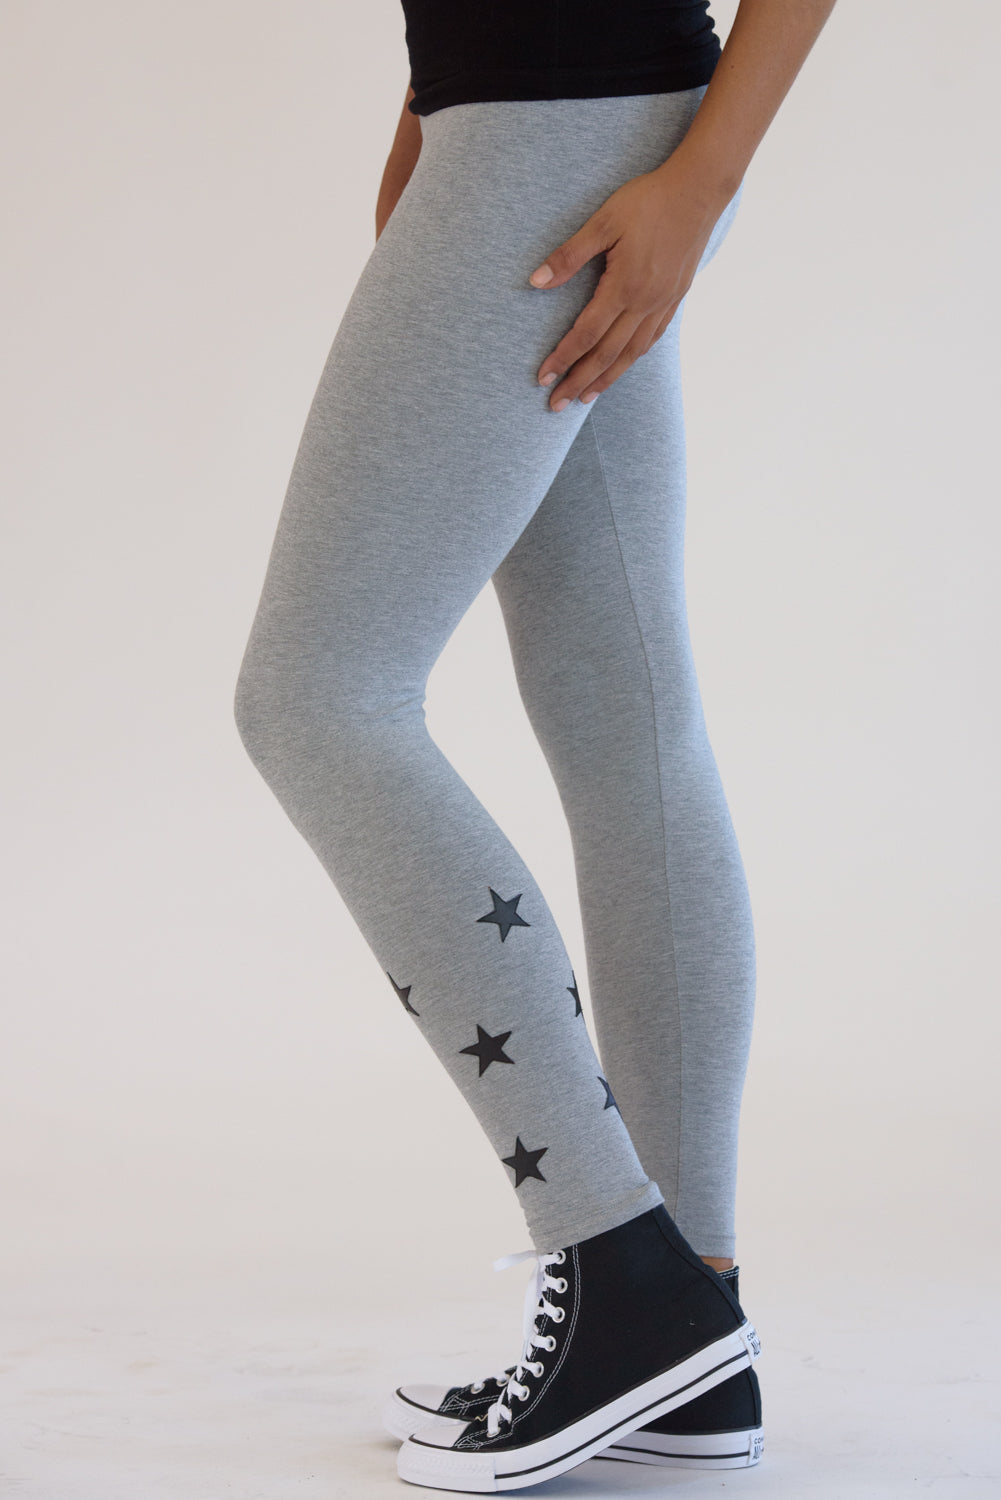 Heather Grey Leggings w/ Black Stars